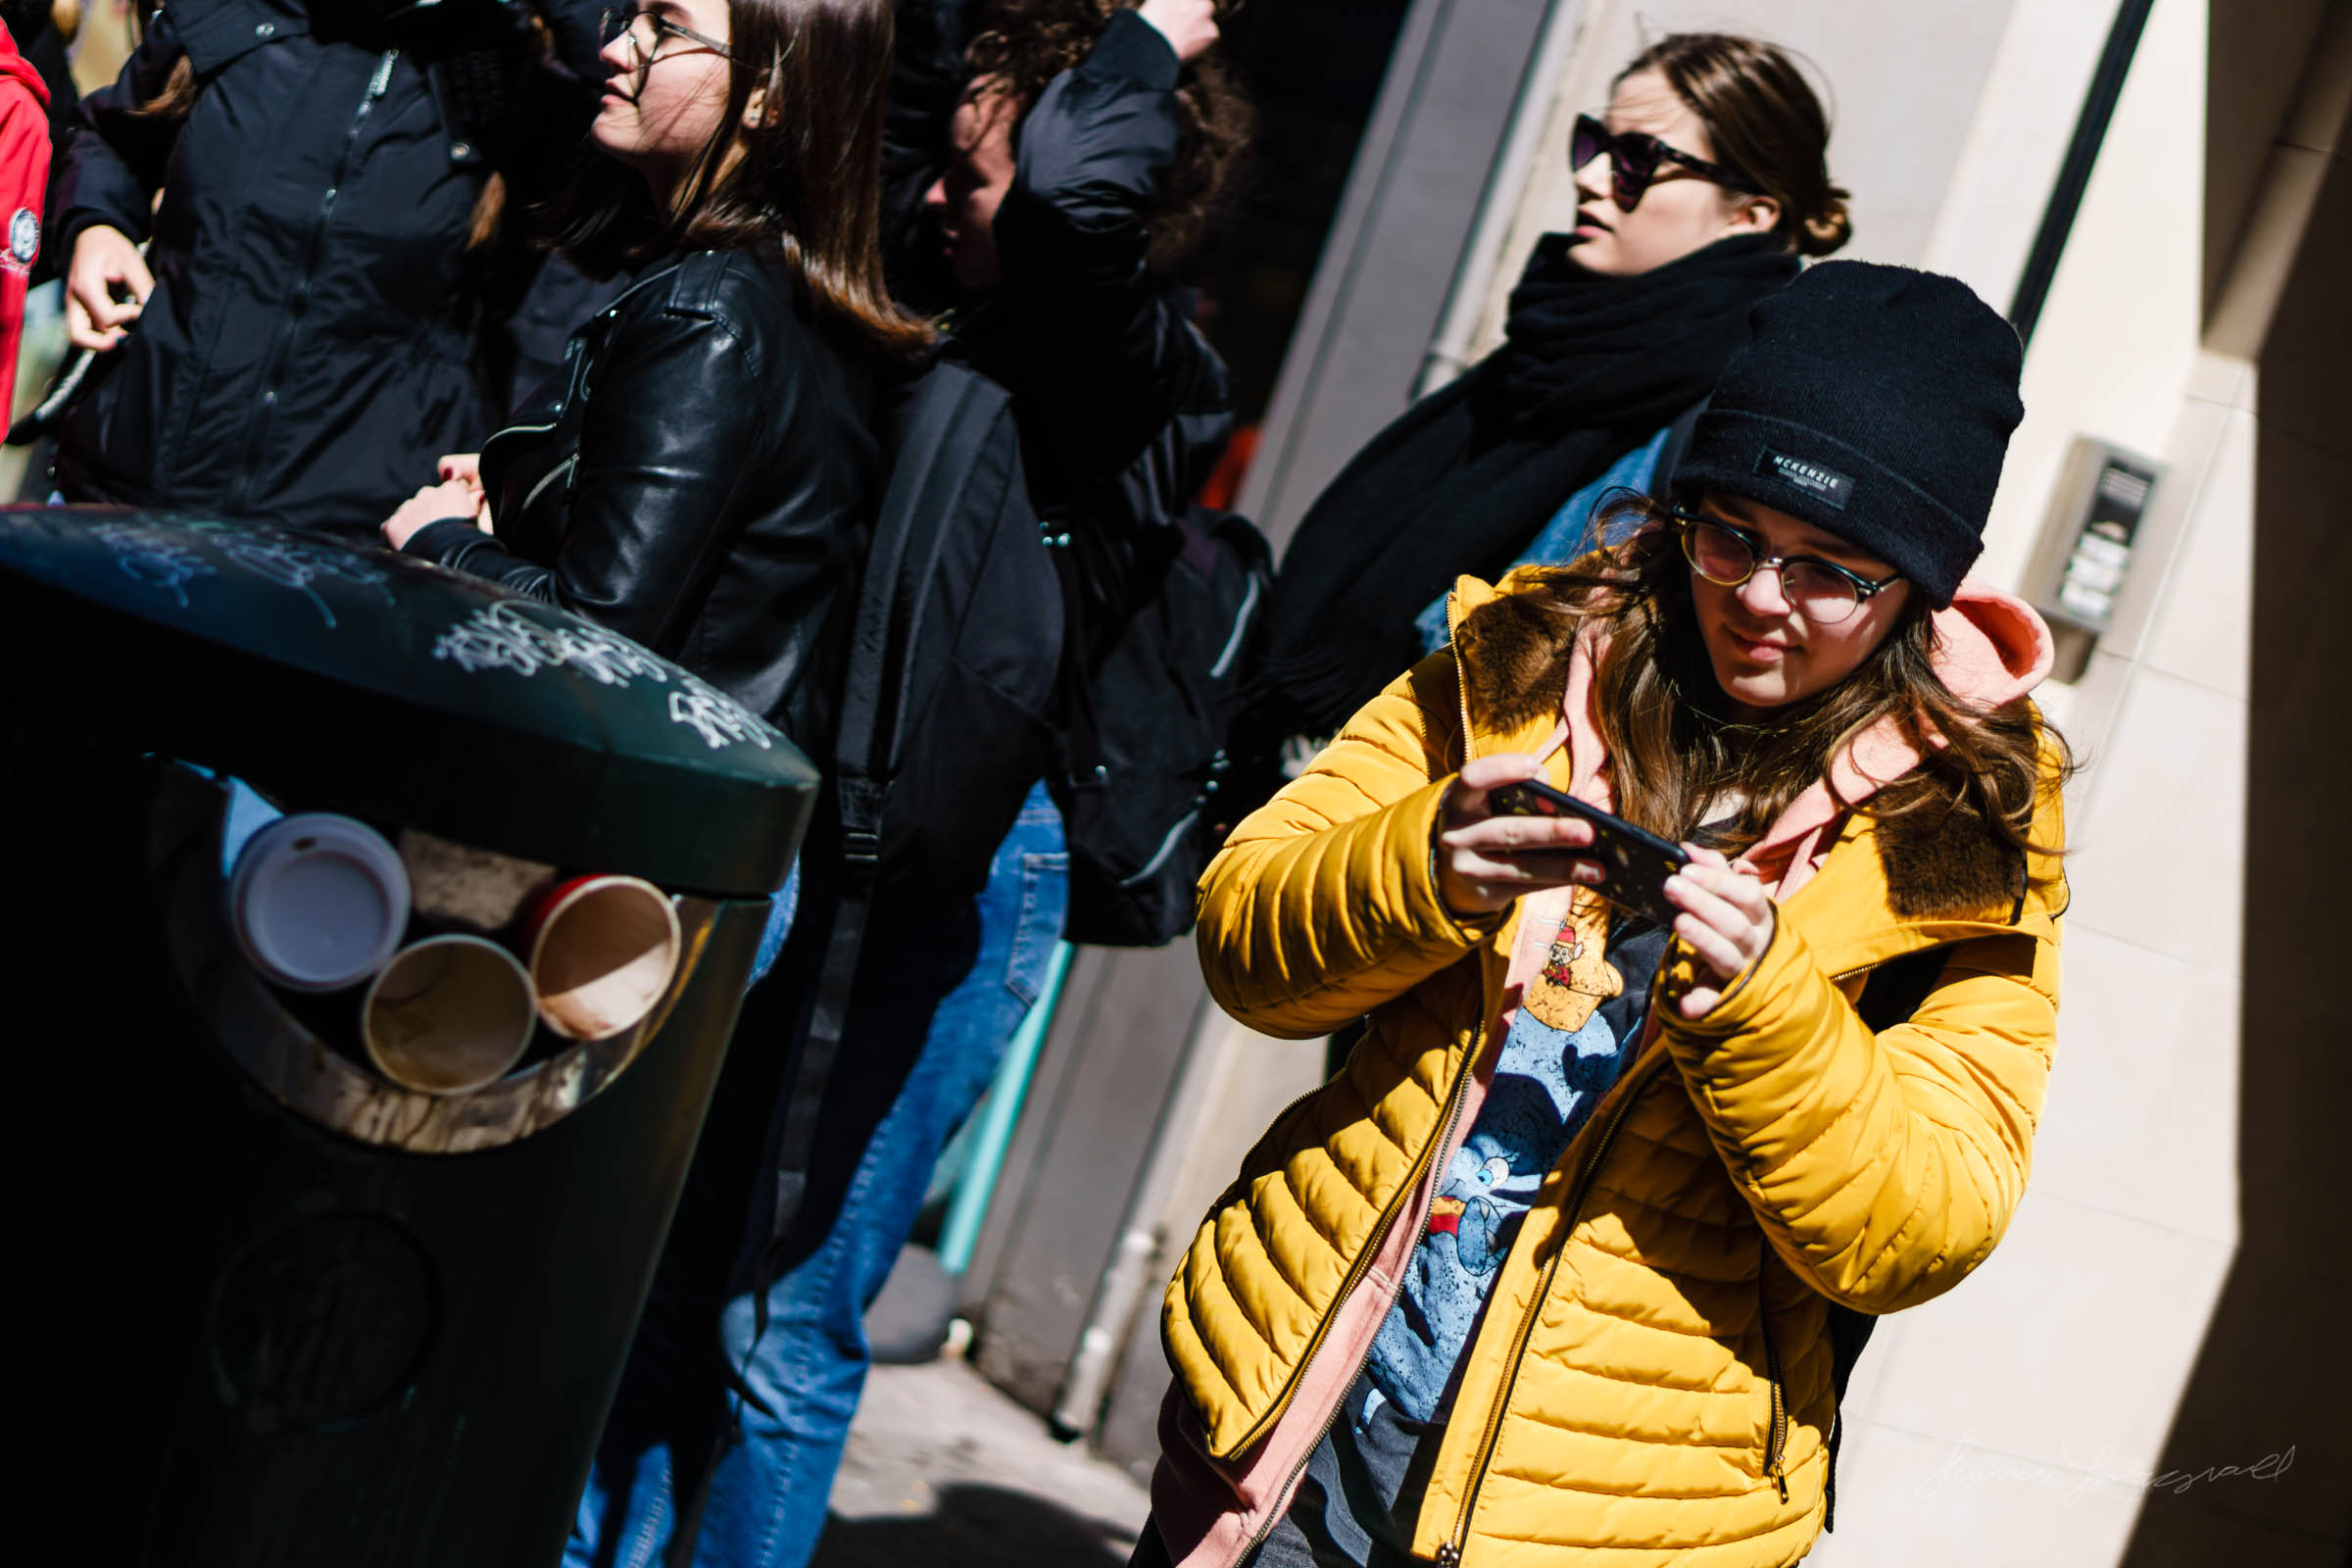 Woman looking at photos on her phone - Street Photography in Dub